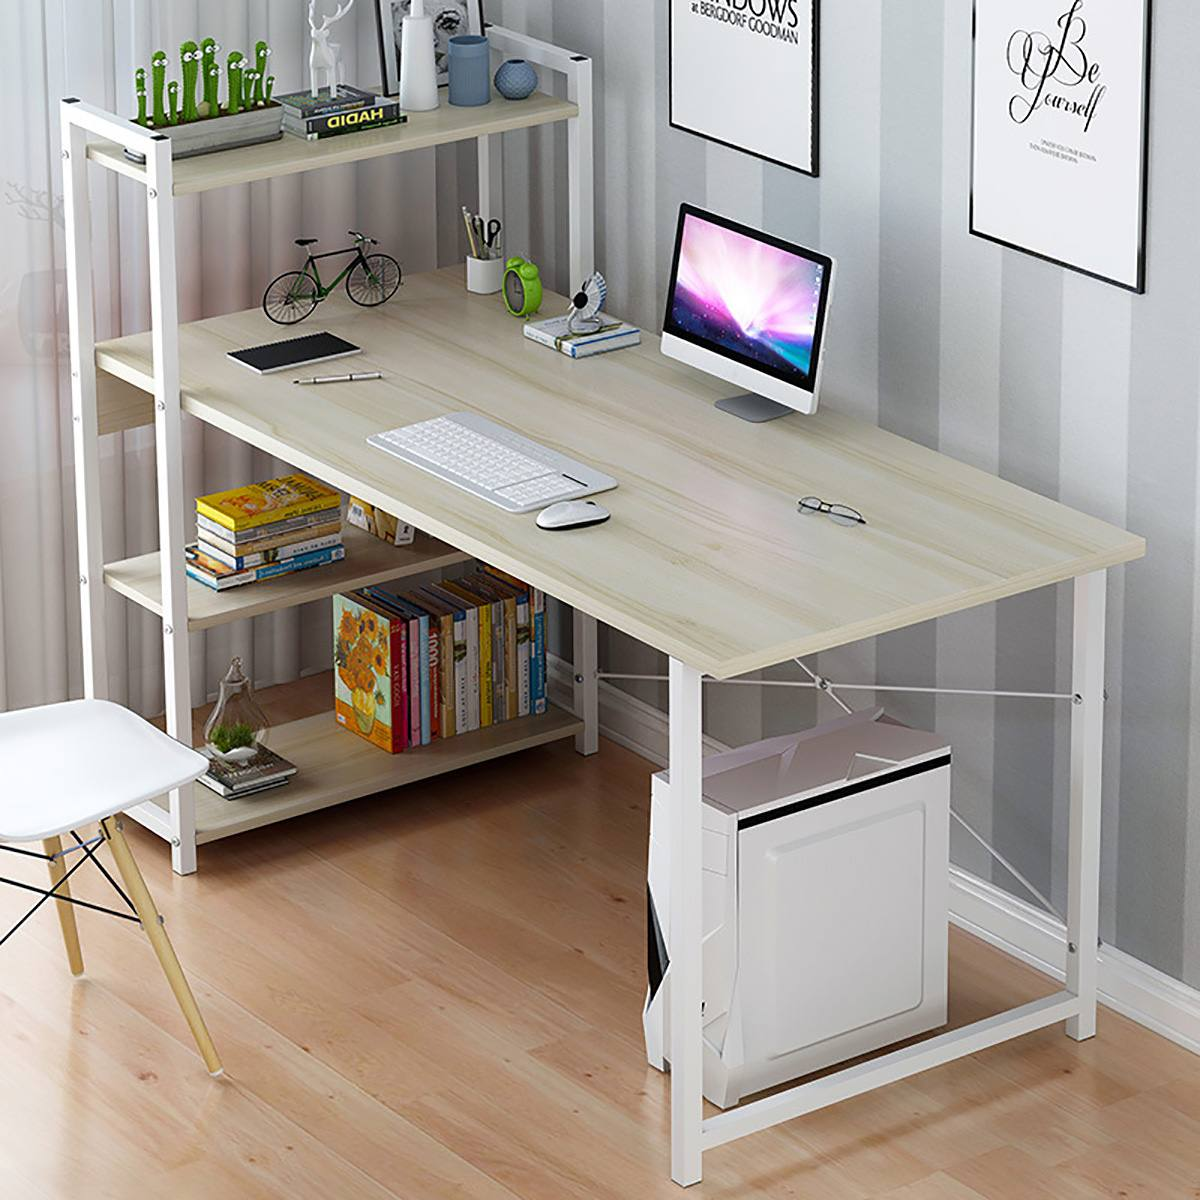 Laptop Simple Modern Desk  Bookcase Computer Desk With Bookshelf Household Student Office Home Desk